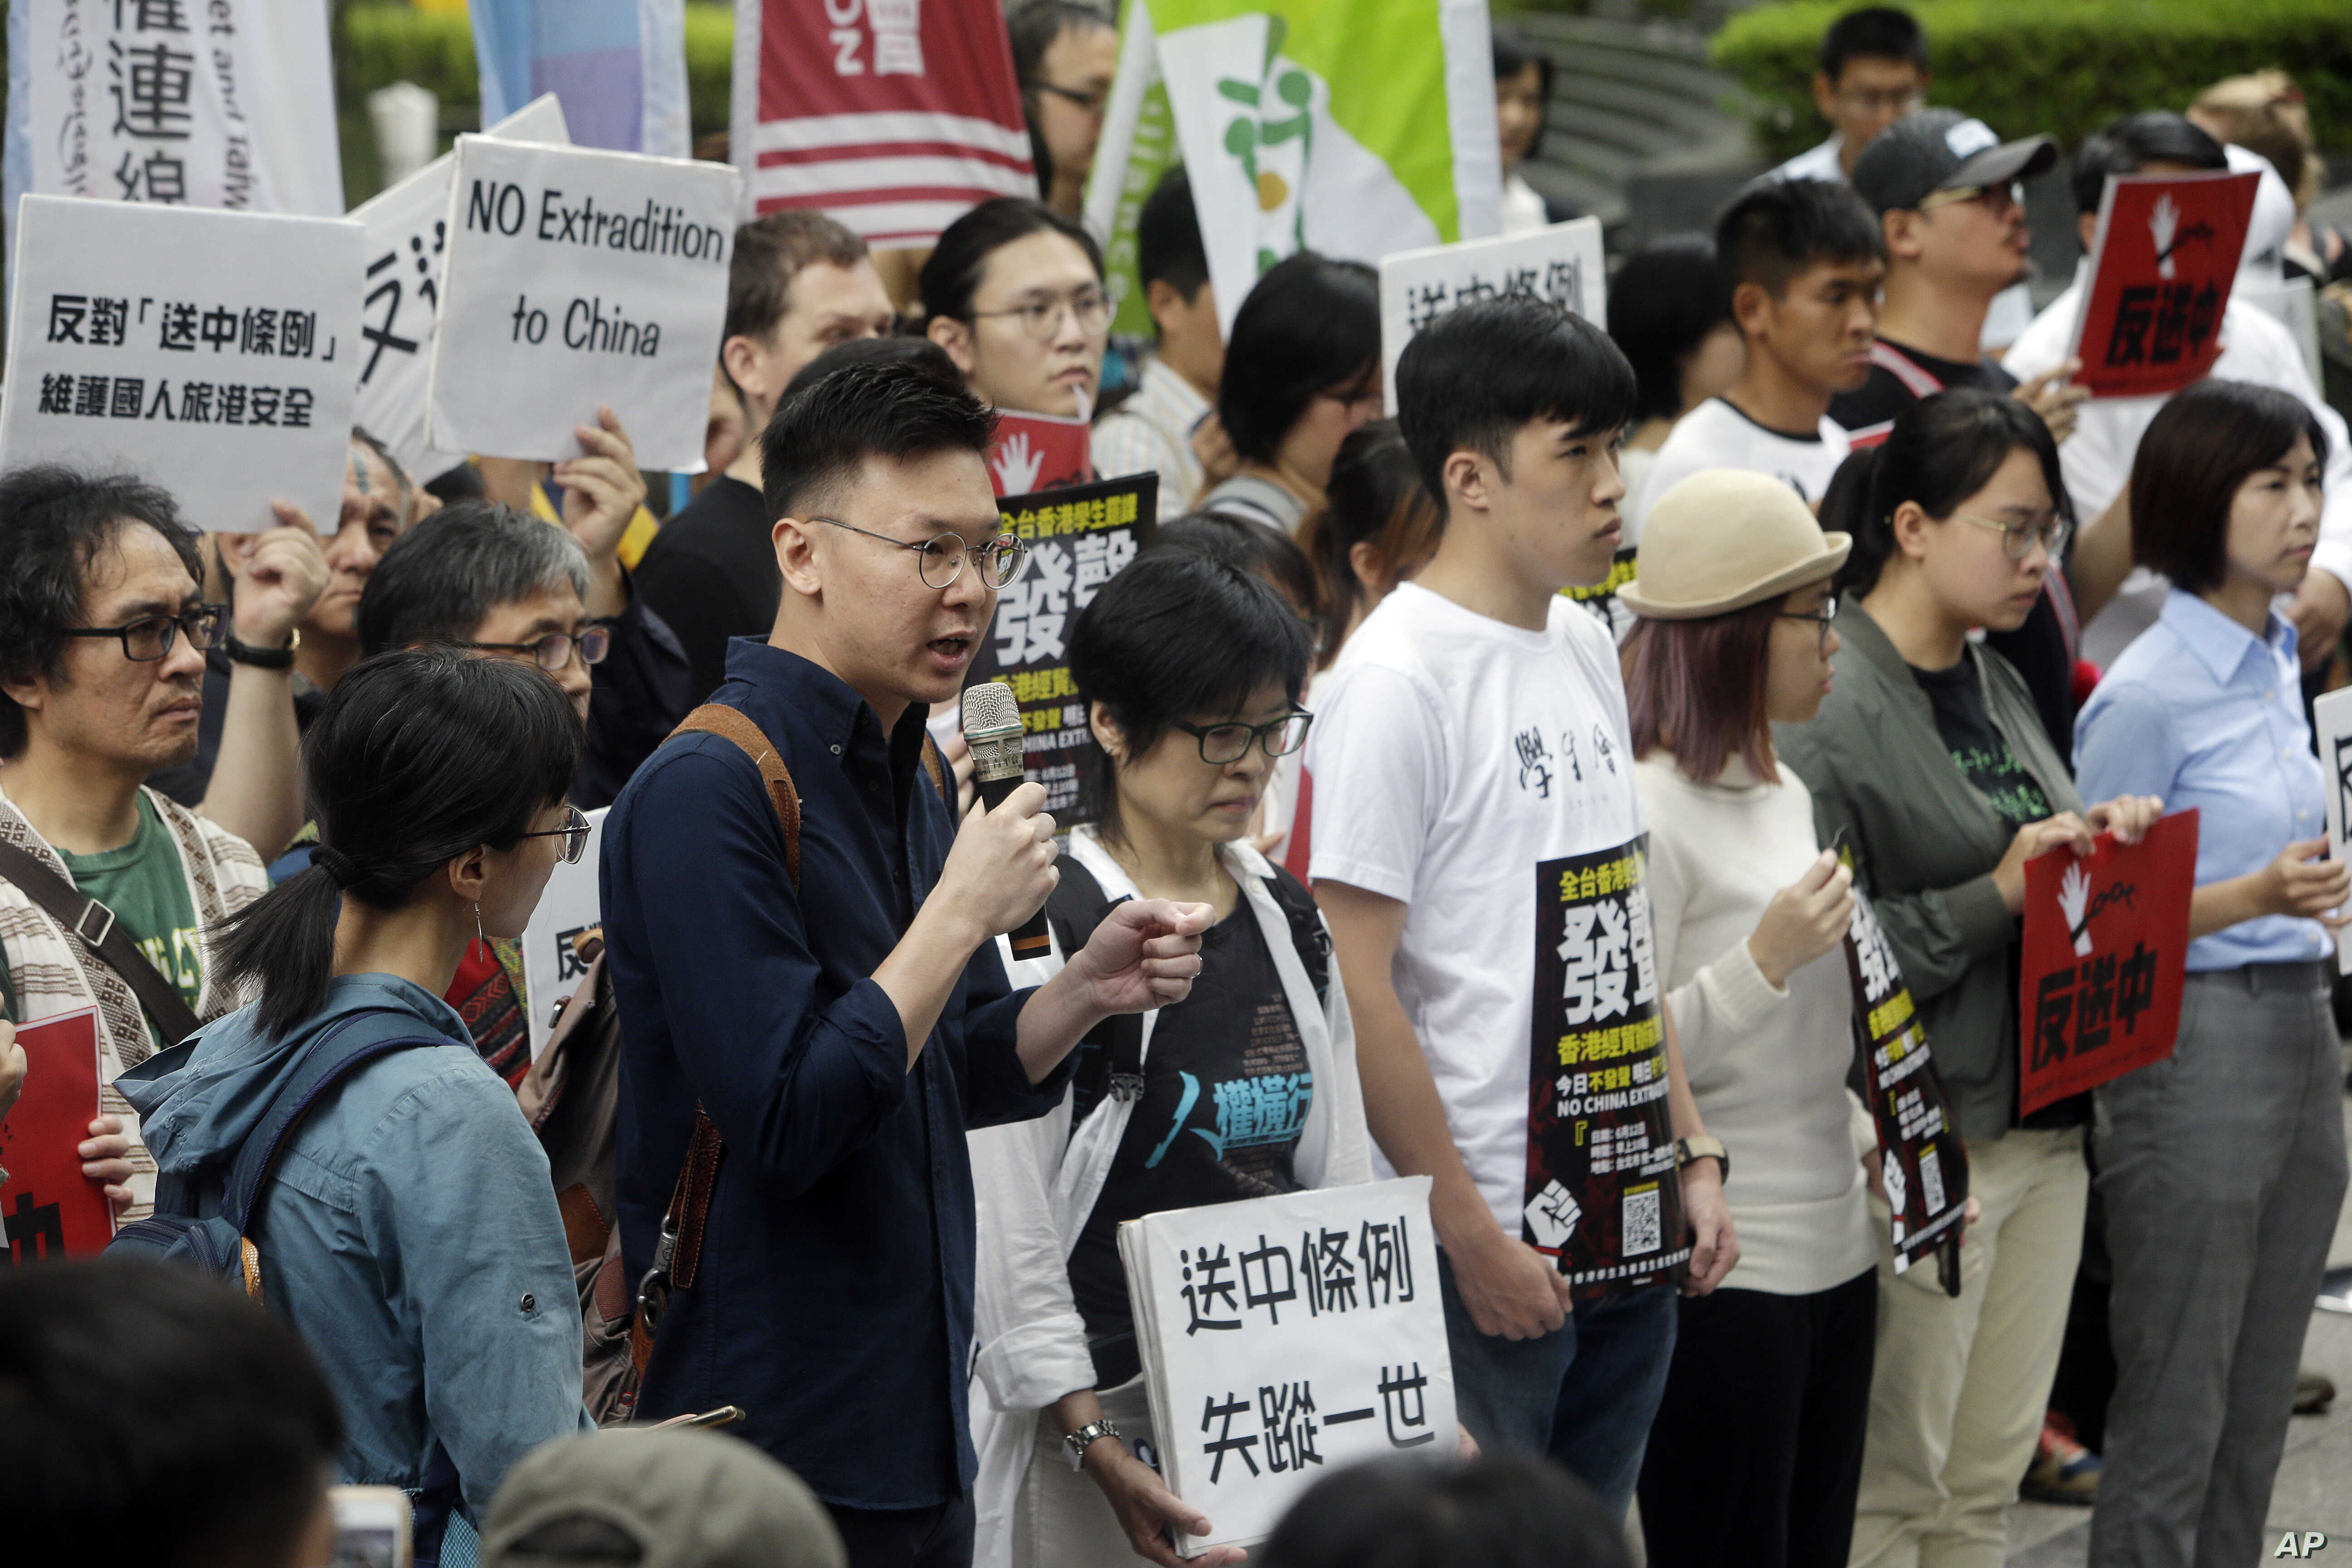 Taiwanese people gather to support Hong Kong people as the administration prepares to open debate on a highly controversial extradition law, in front of Hong Kong Economic, Trade and Culture Office in Taipei, Taiwan, June 12, 2019.